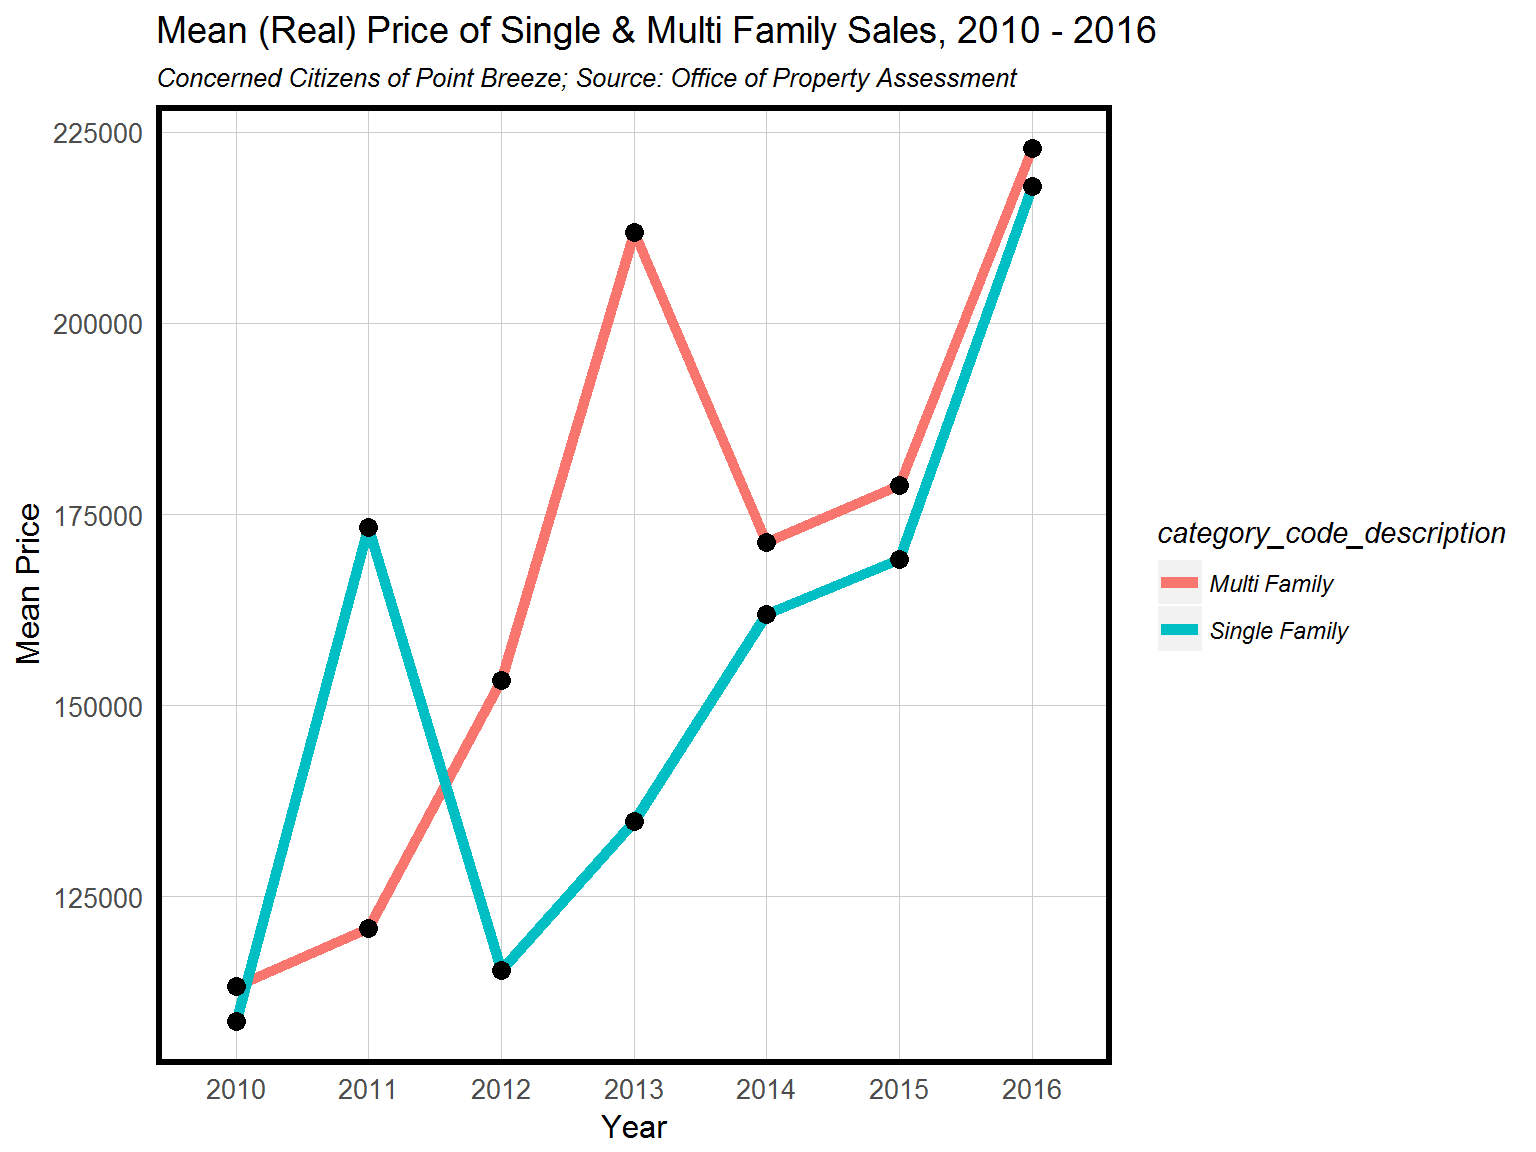 Mean (real) price of single and multi family sales in Point Breeze, 2010-2016. Credit: Ken Steif